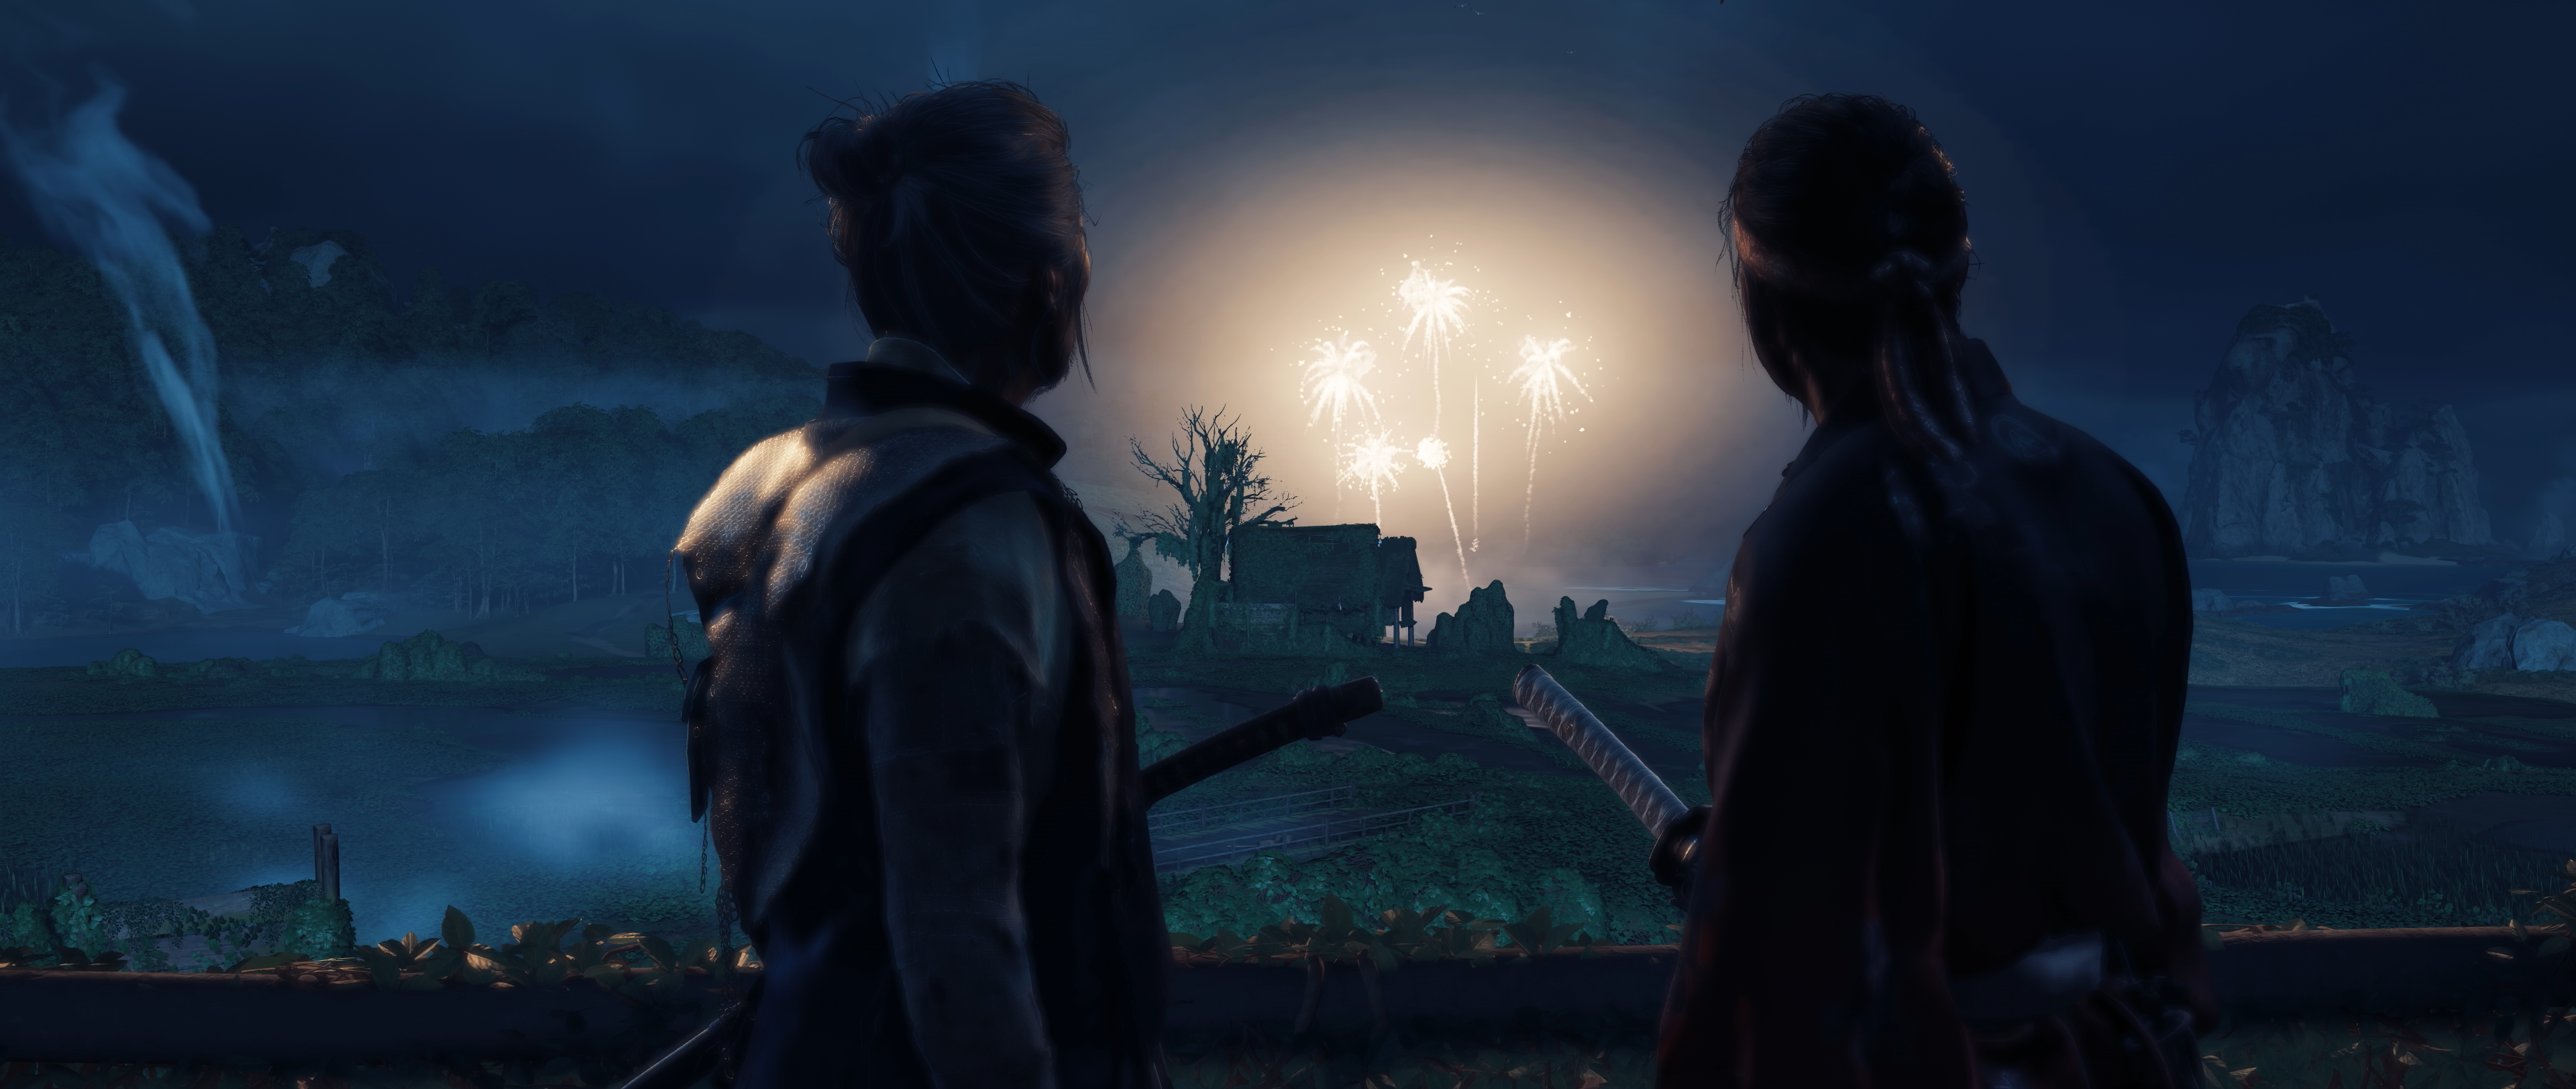 two silhouetted characters watch a fireworks volley in the distance, at night, in Ghost of Tsushima